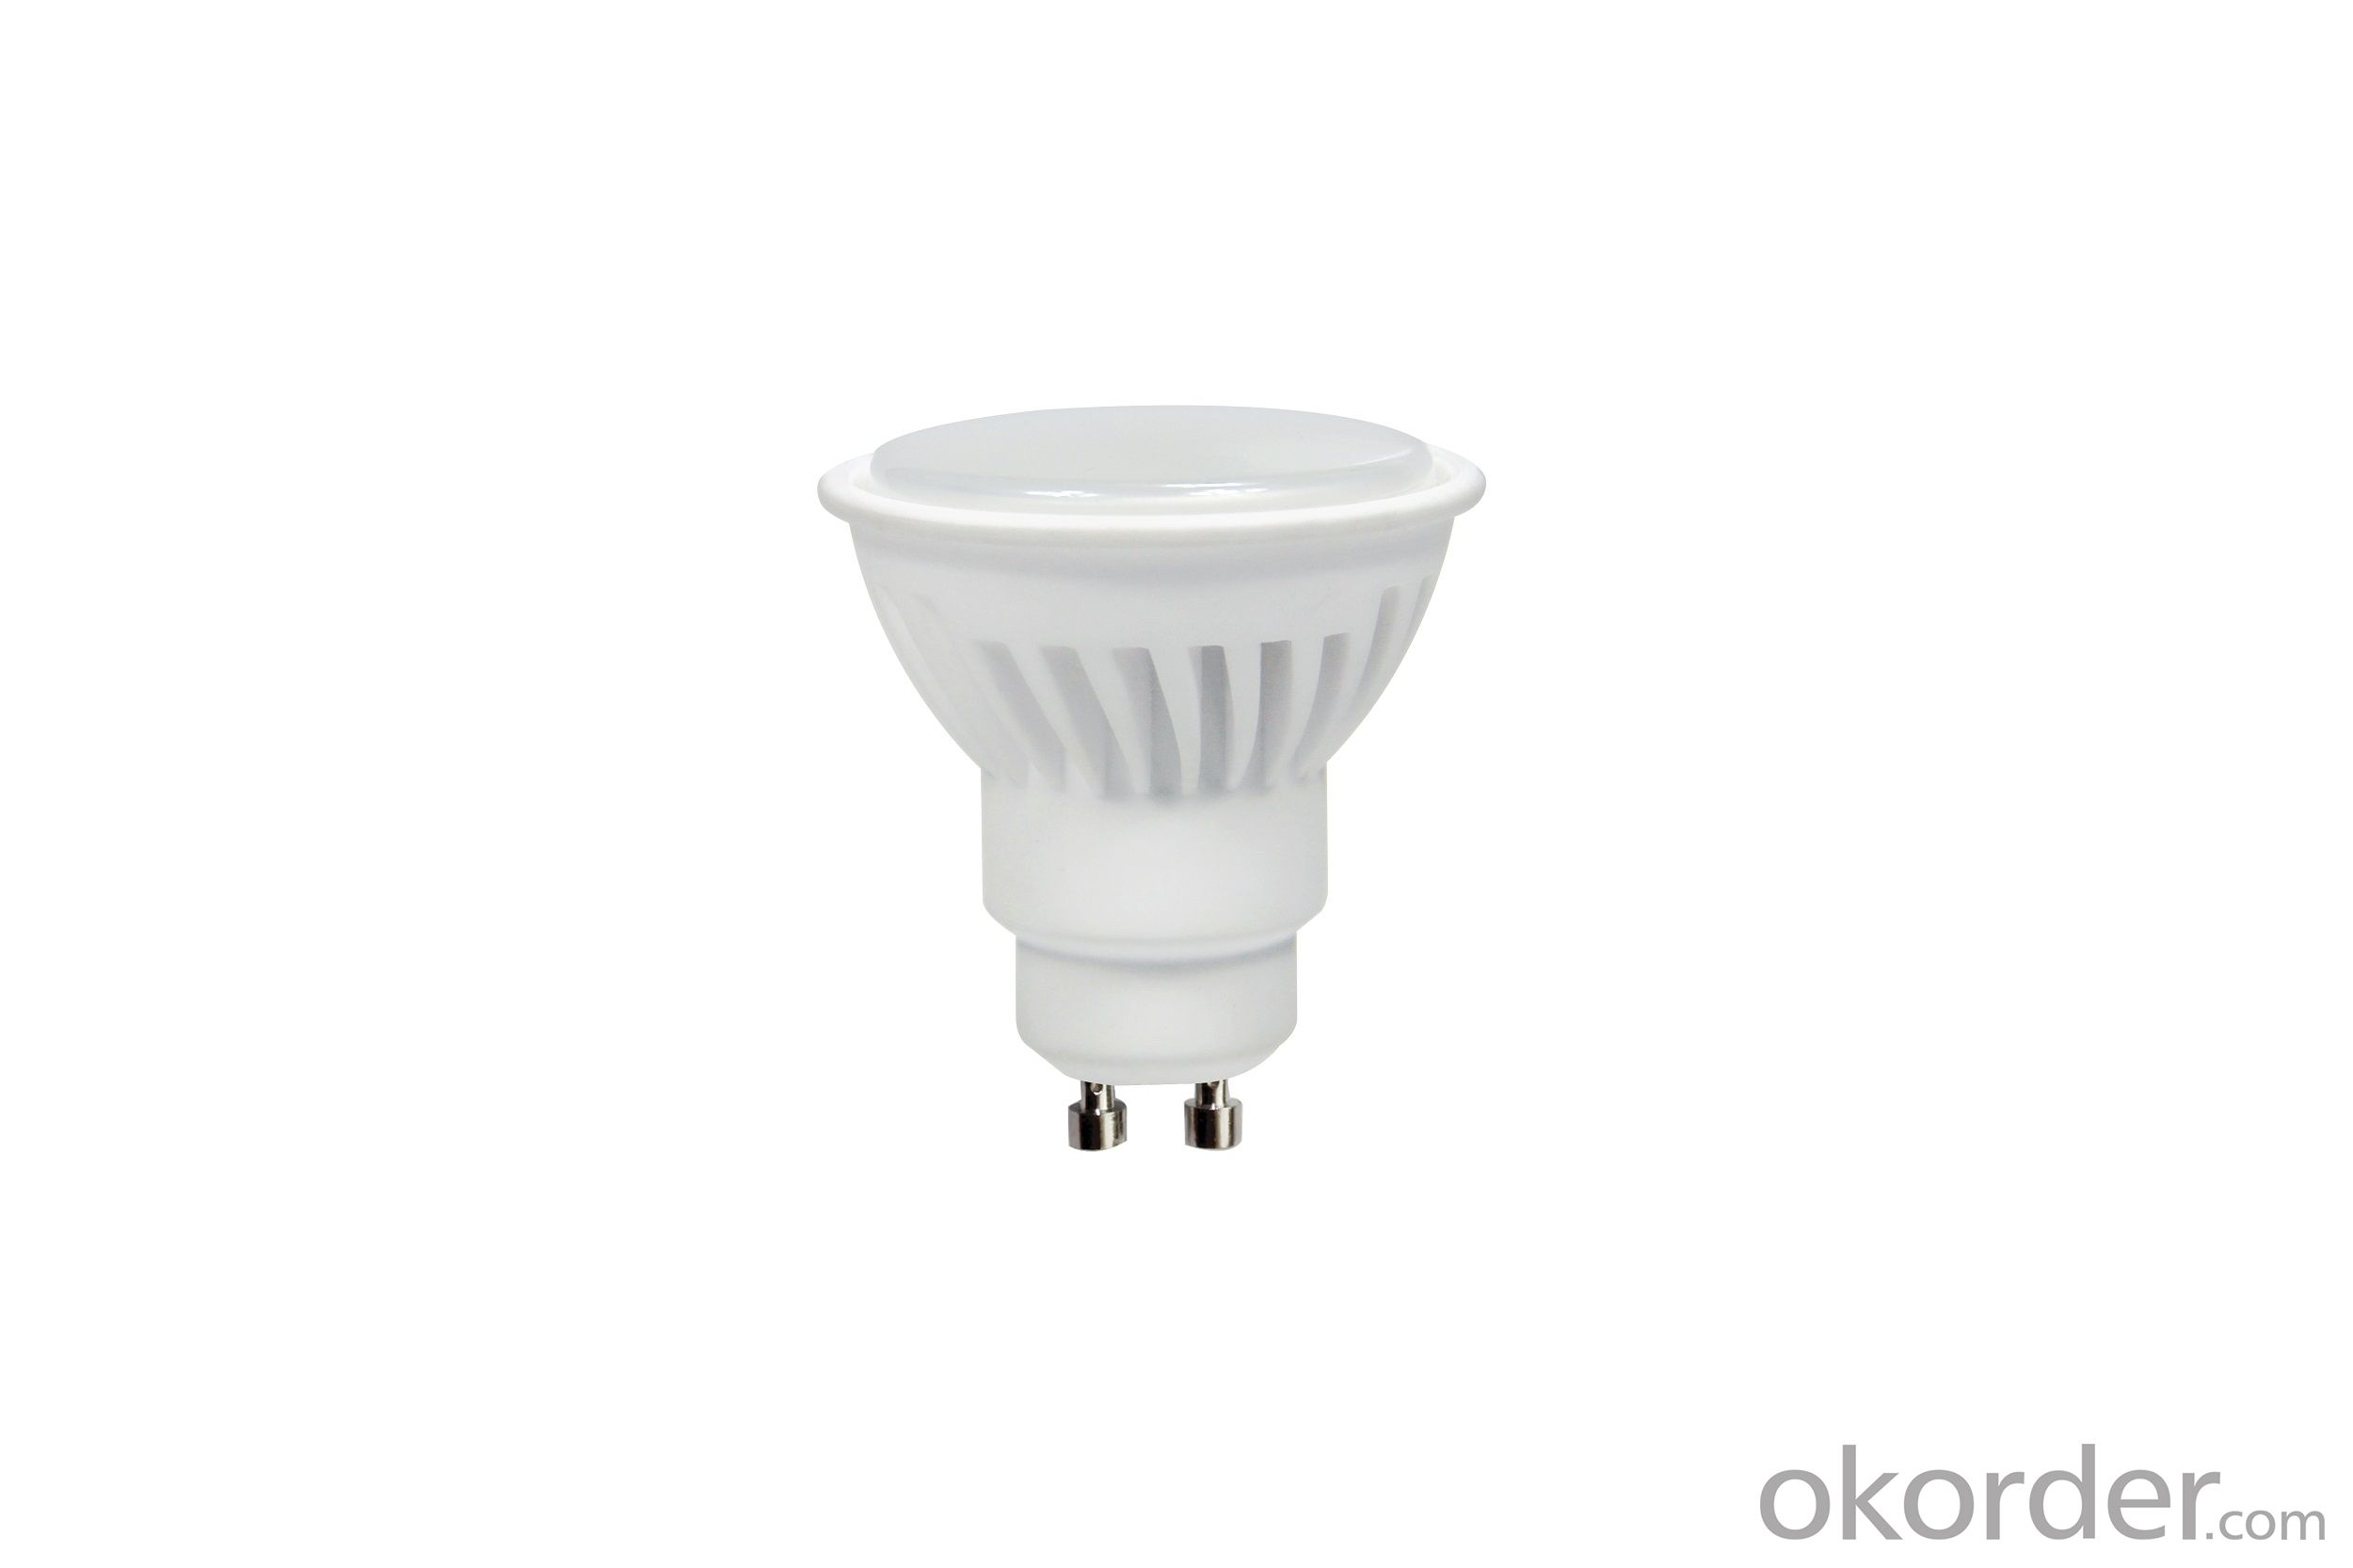 LED  Spot Light  GU10 5W SMD2835 High CRI High Lumen